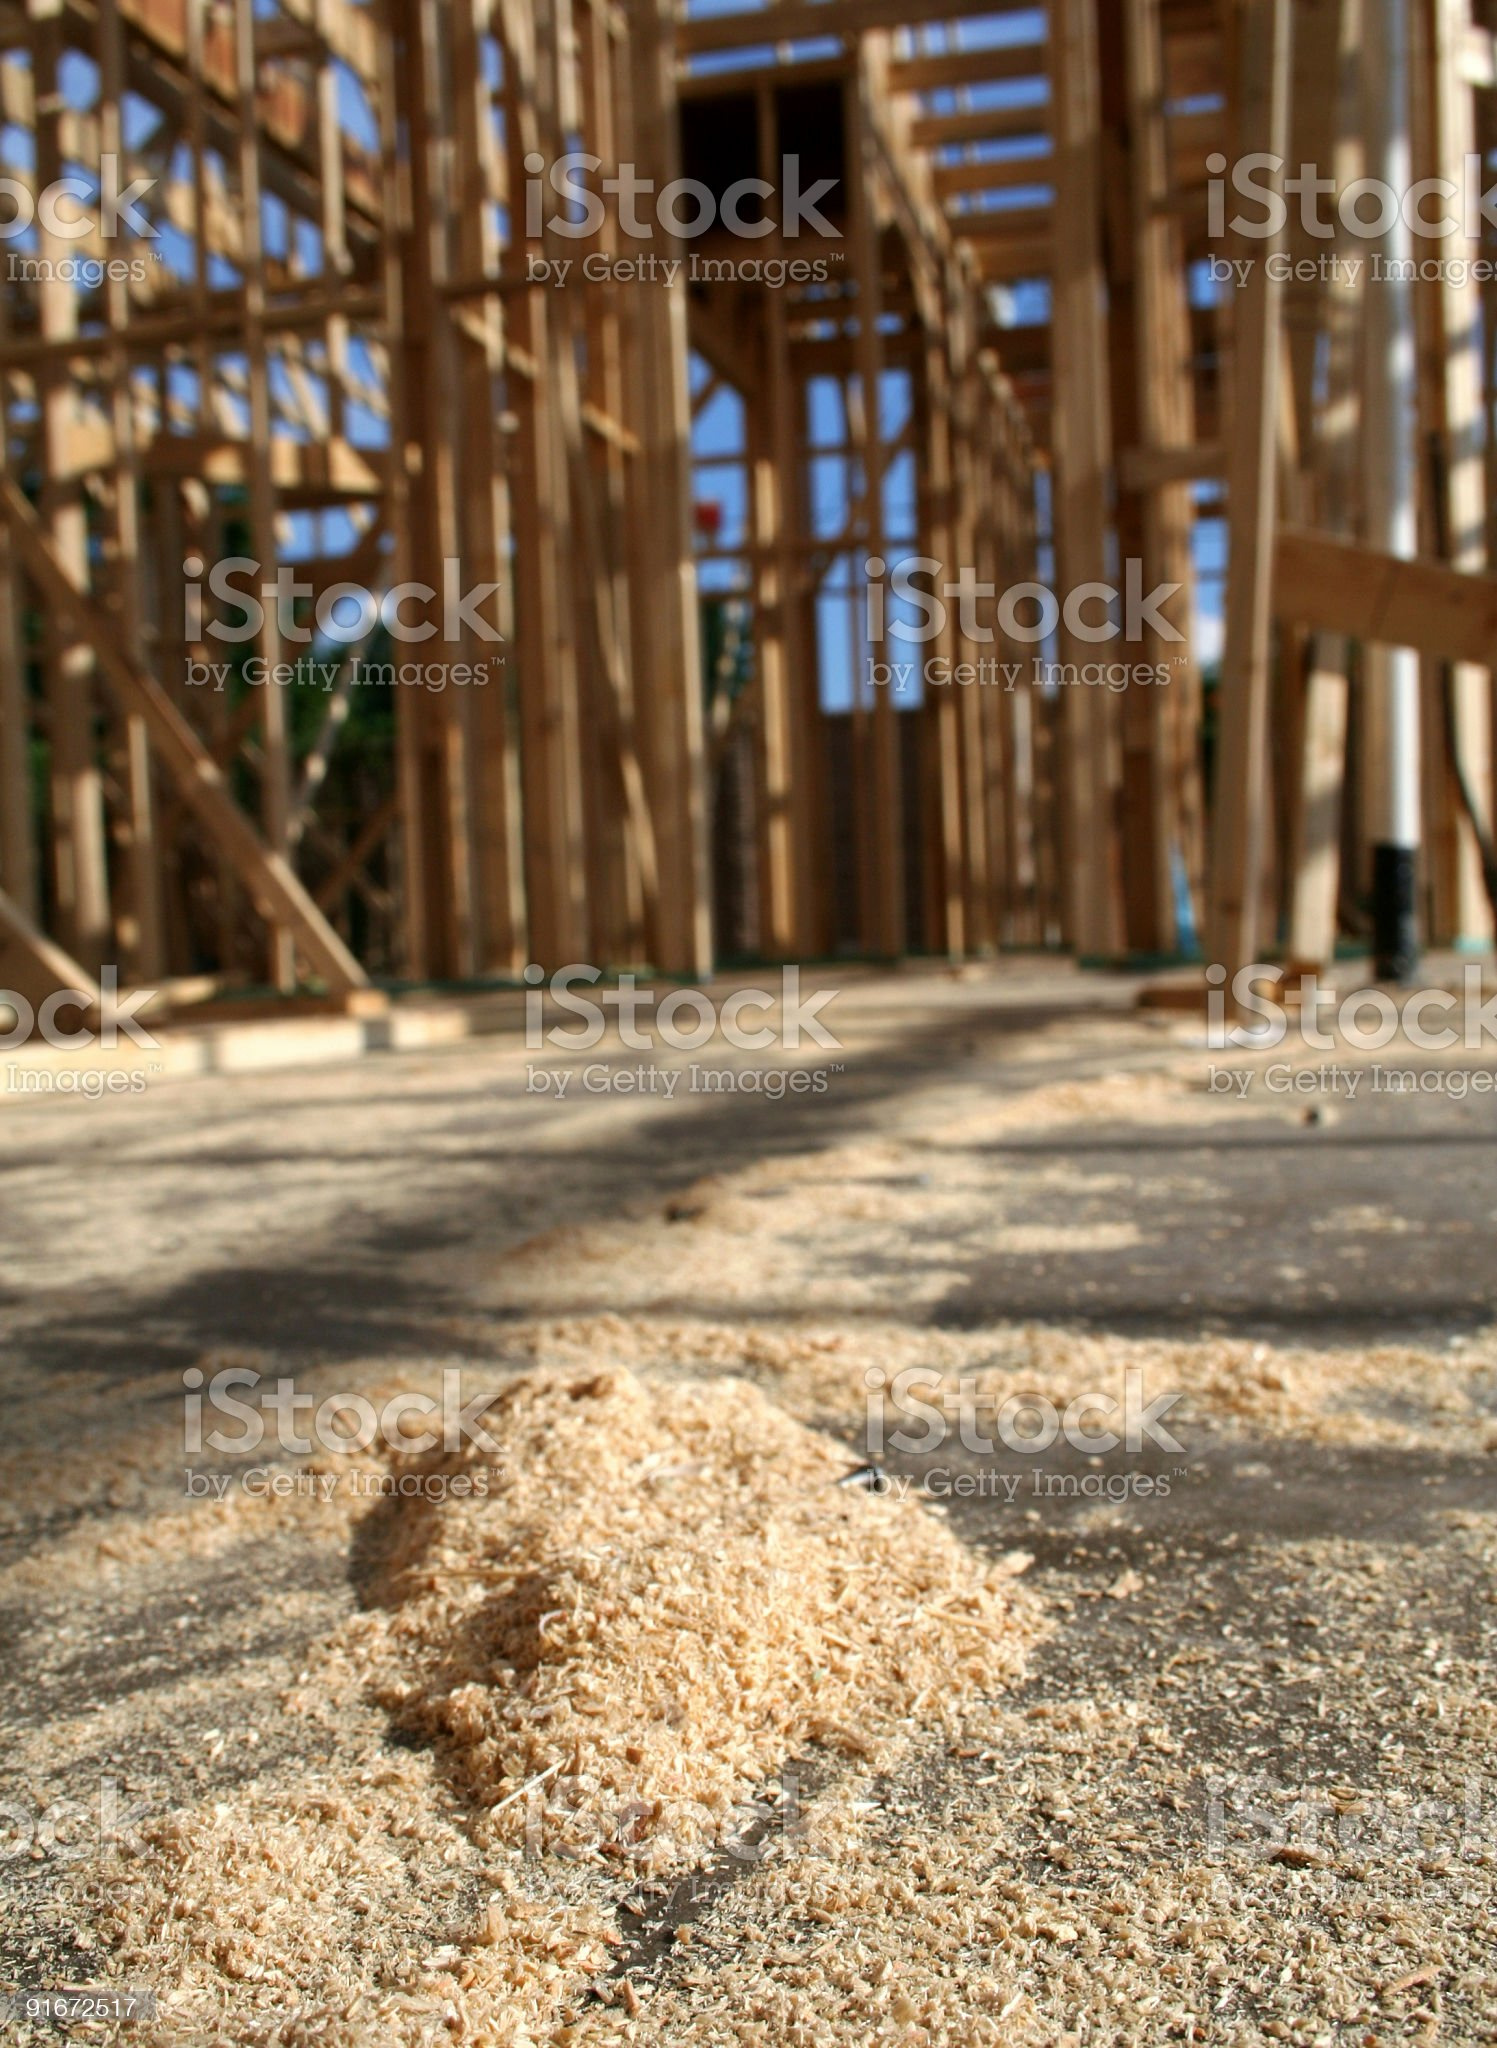 Sawdust at Construction Site royalty-free stock photo